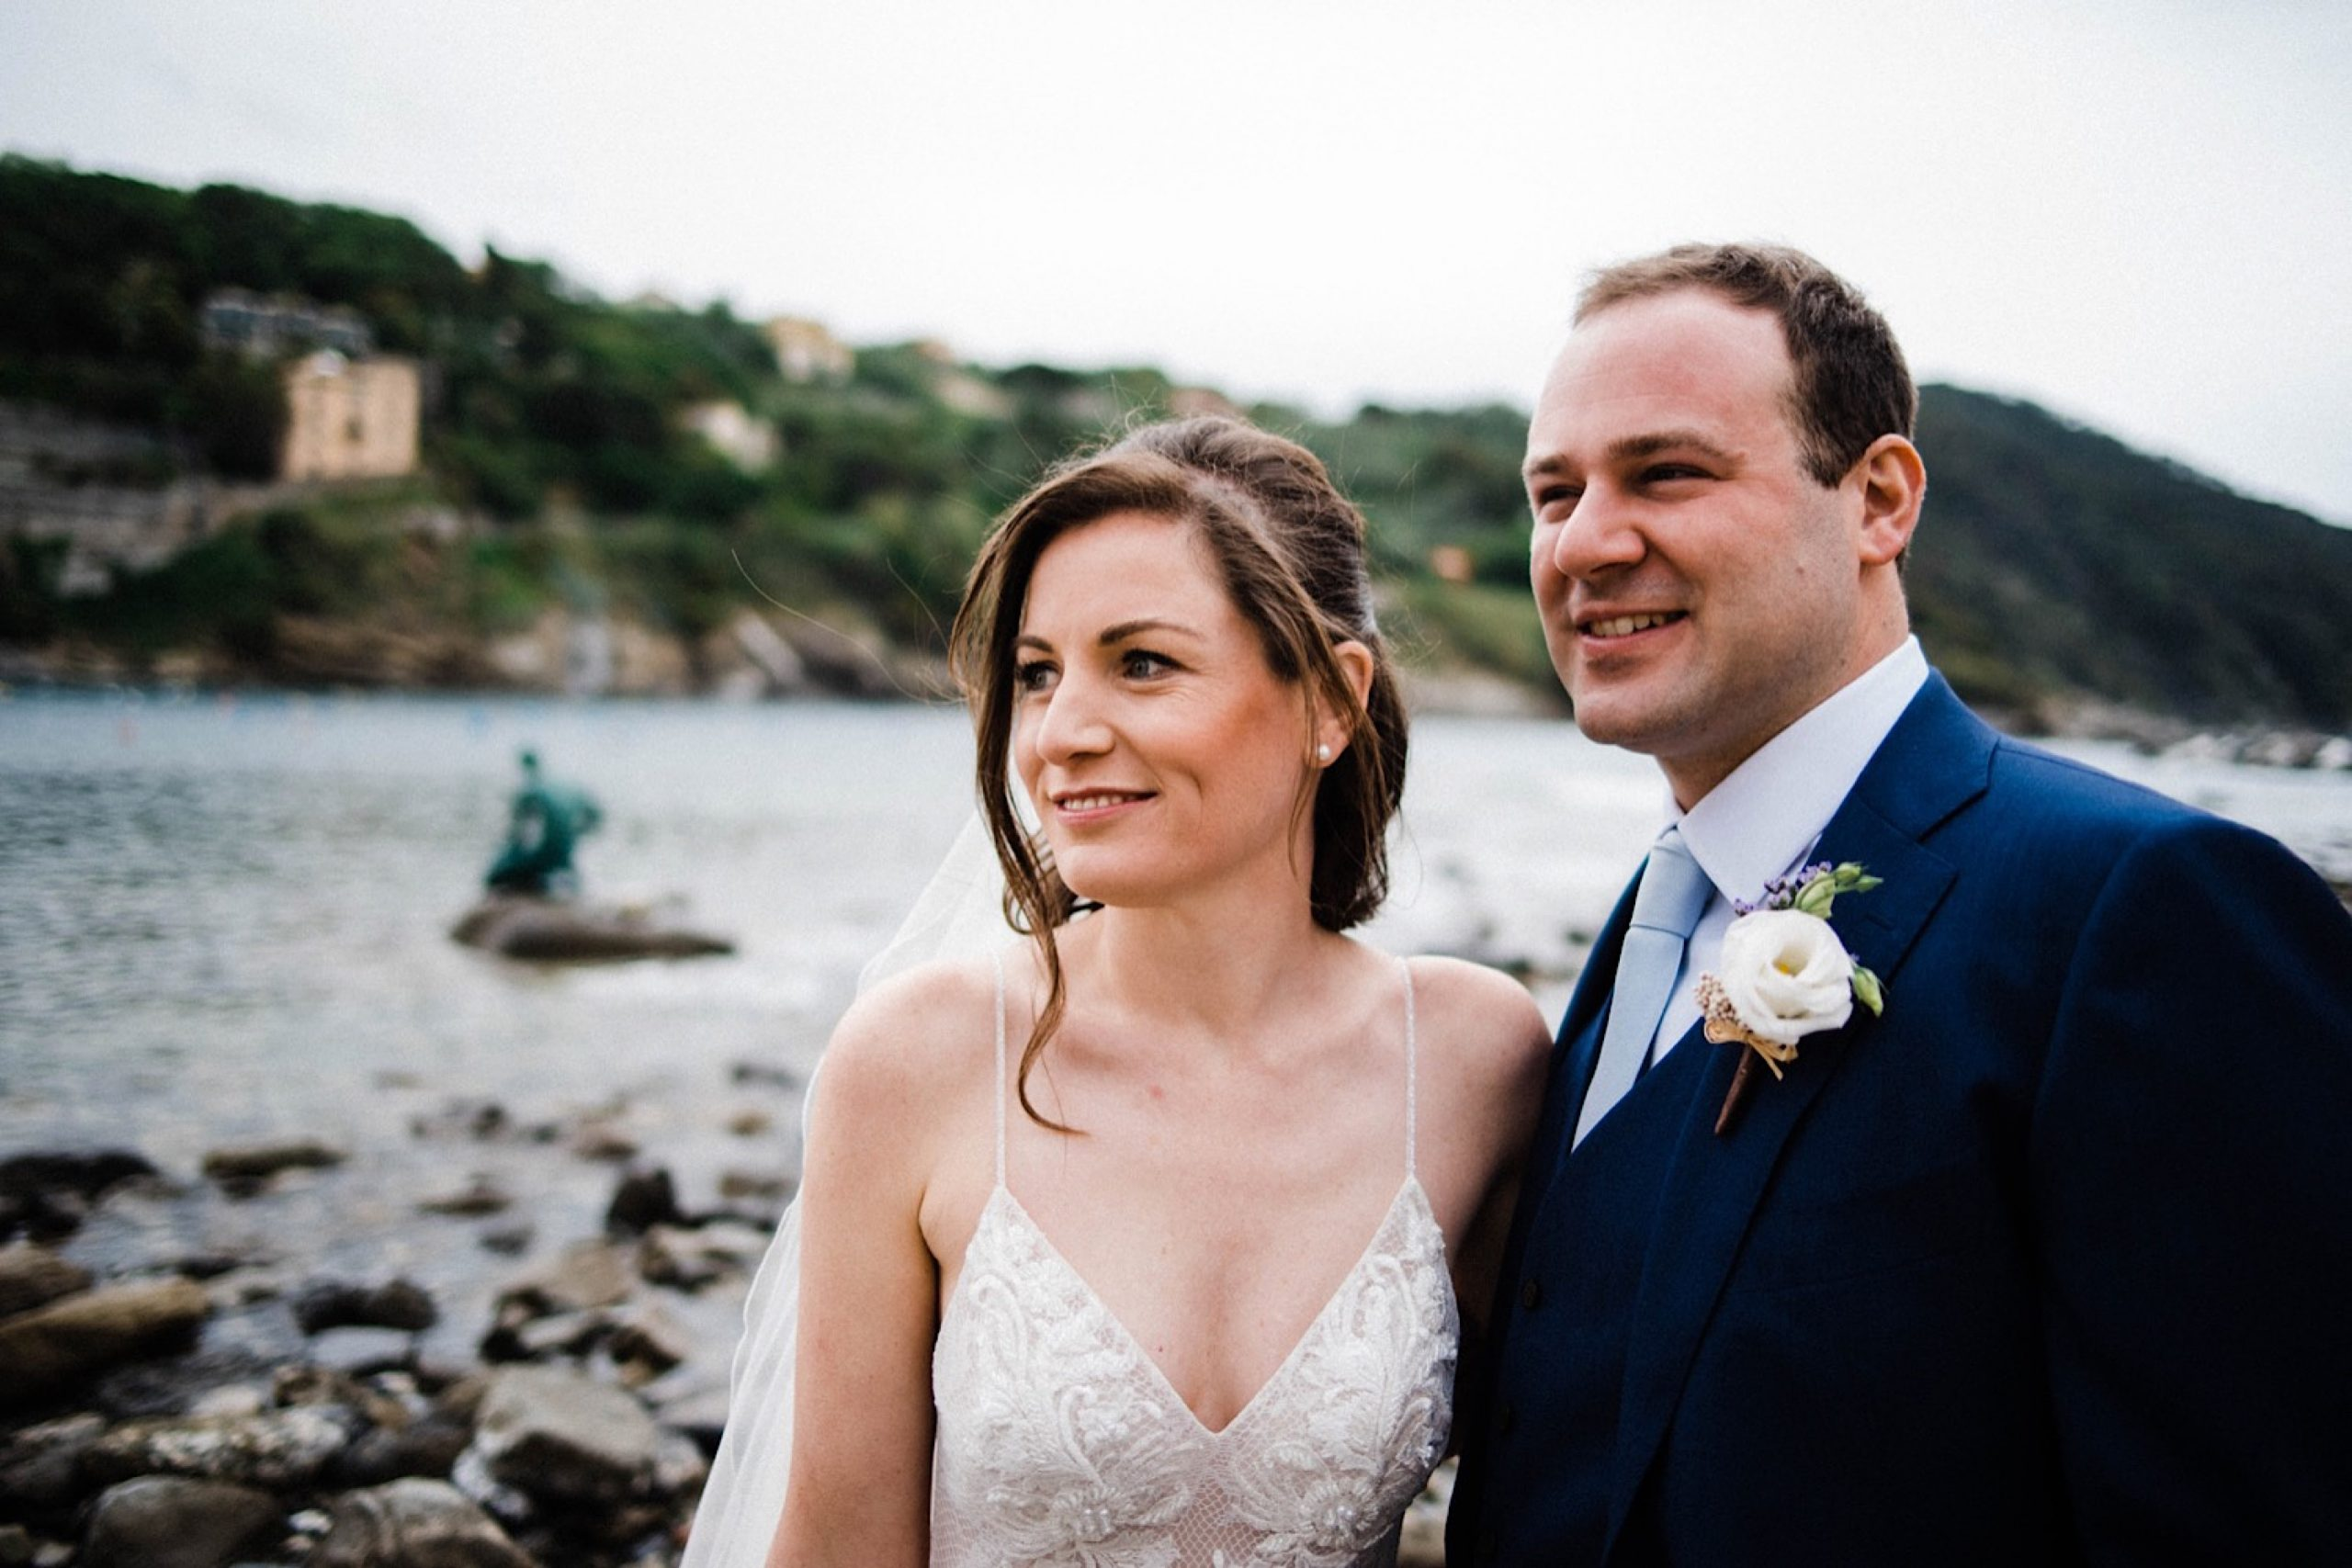 Relaxed Wedding Photography of a bride & groom smiling and looking off to the side in Sestri Levante.